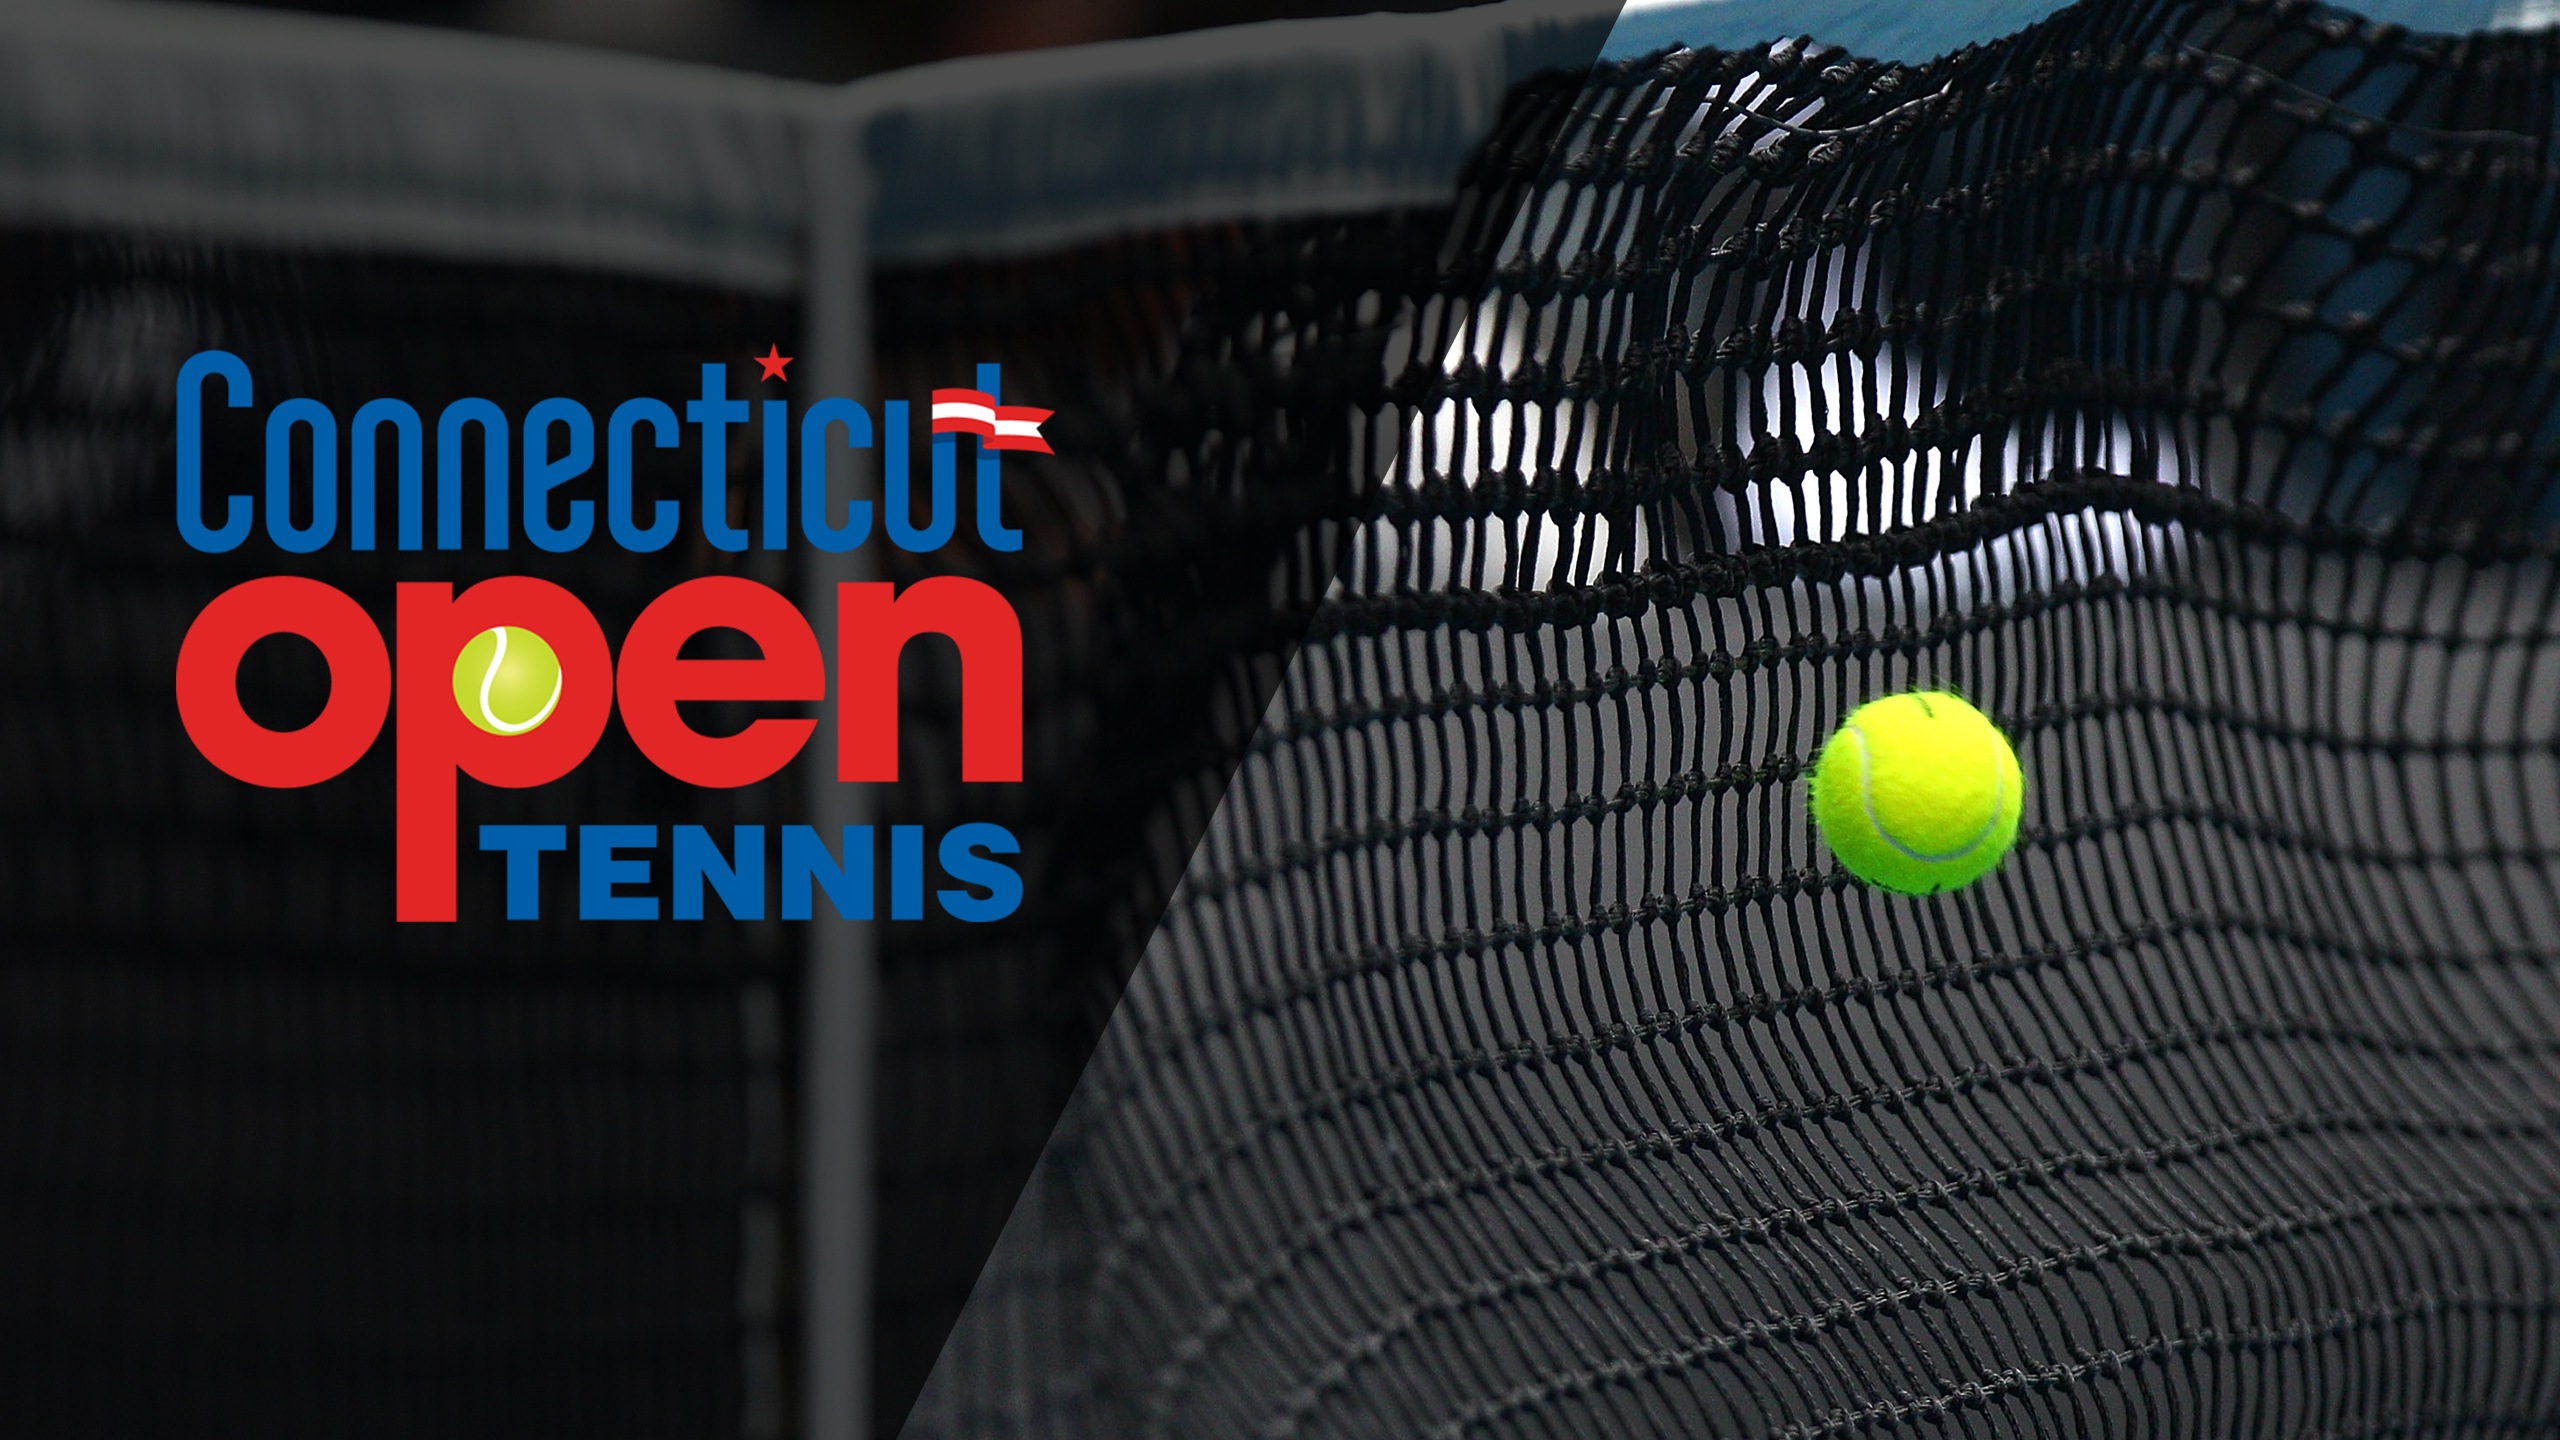 2018 US Open Series - Connecticut Open (First & Second Round)